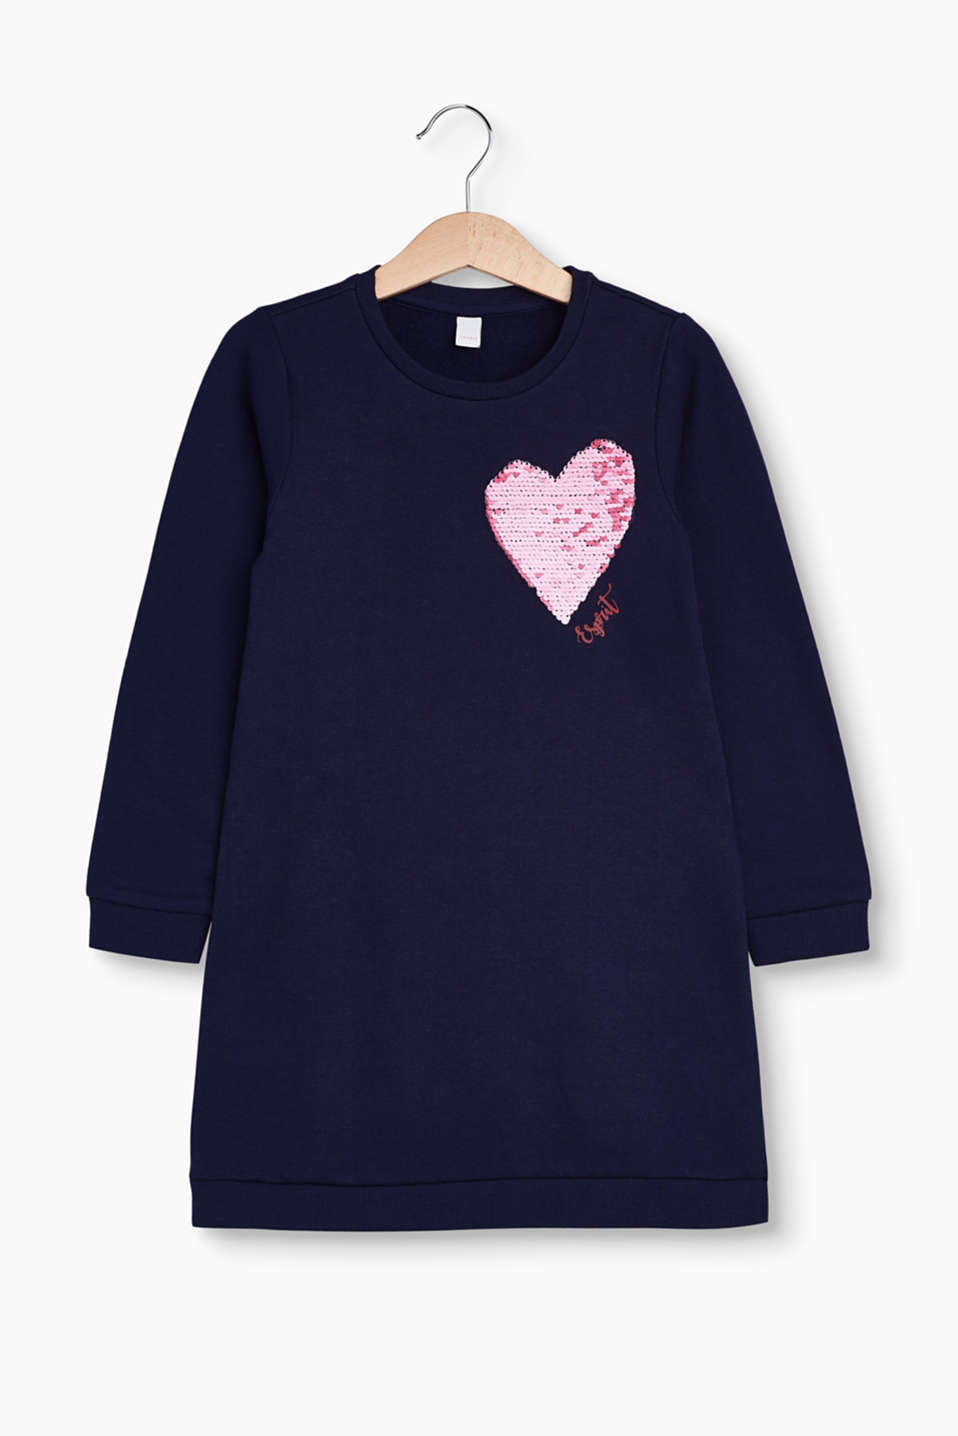 A comfortable favourite! Sweatshirt dress made of pure cotton with a heart in dazzling reversible sequins.